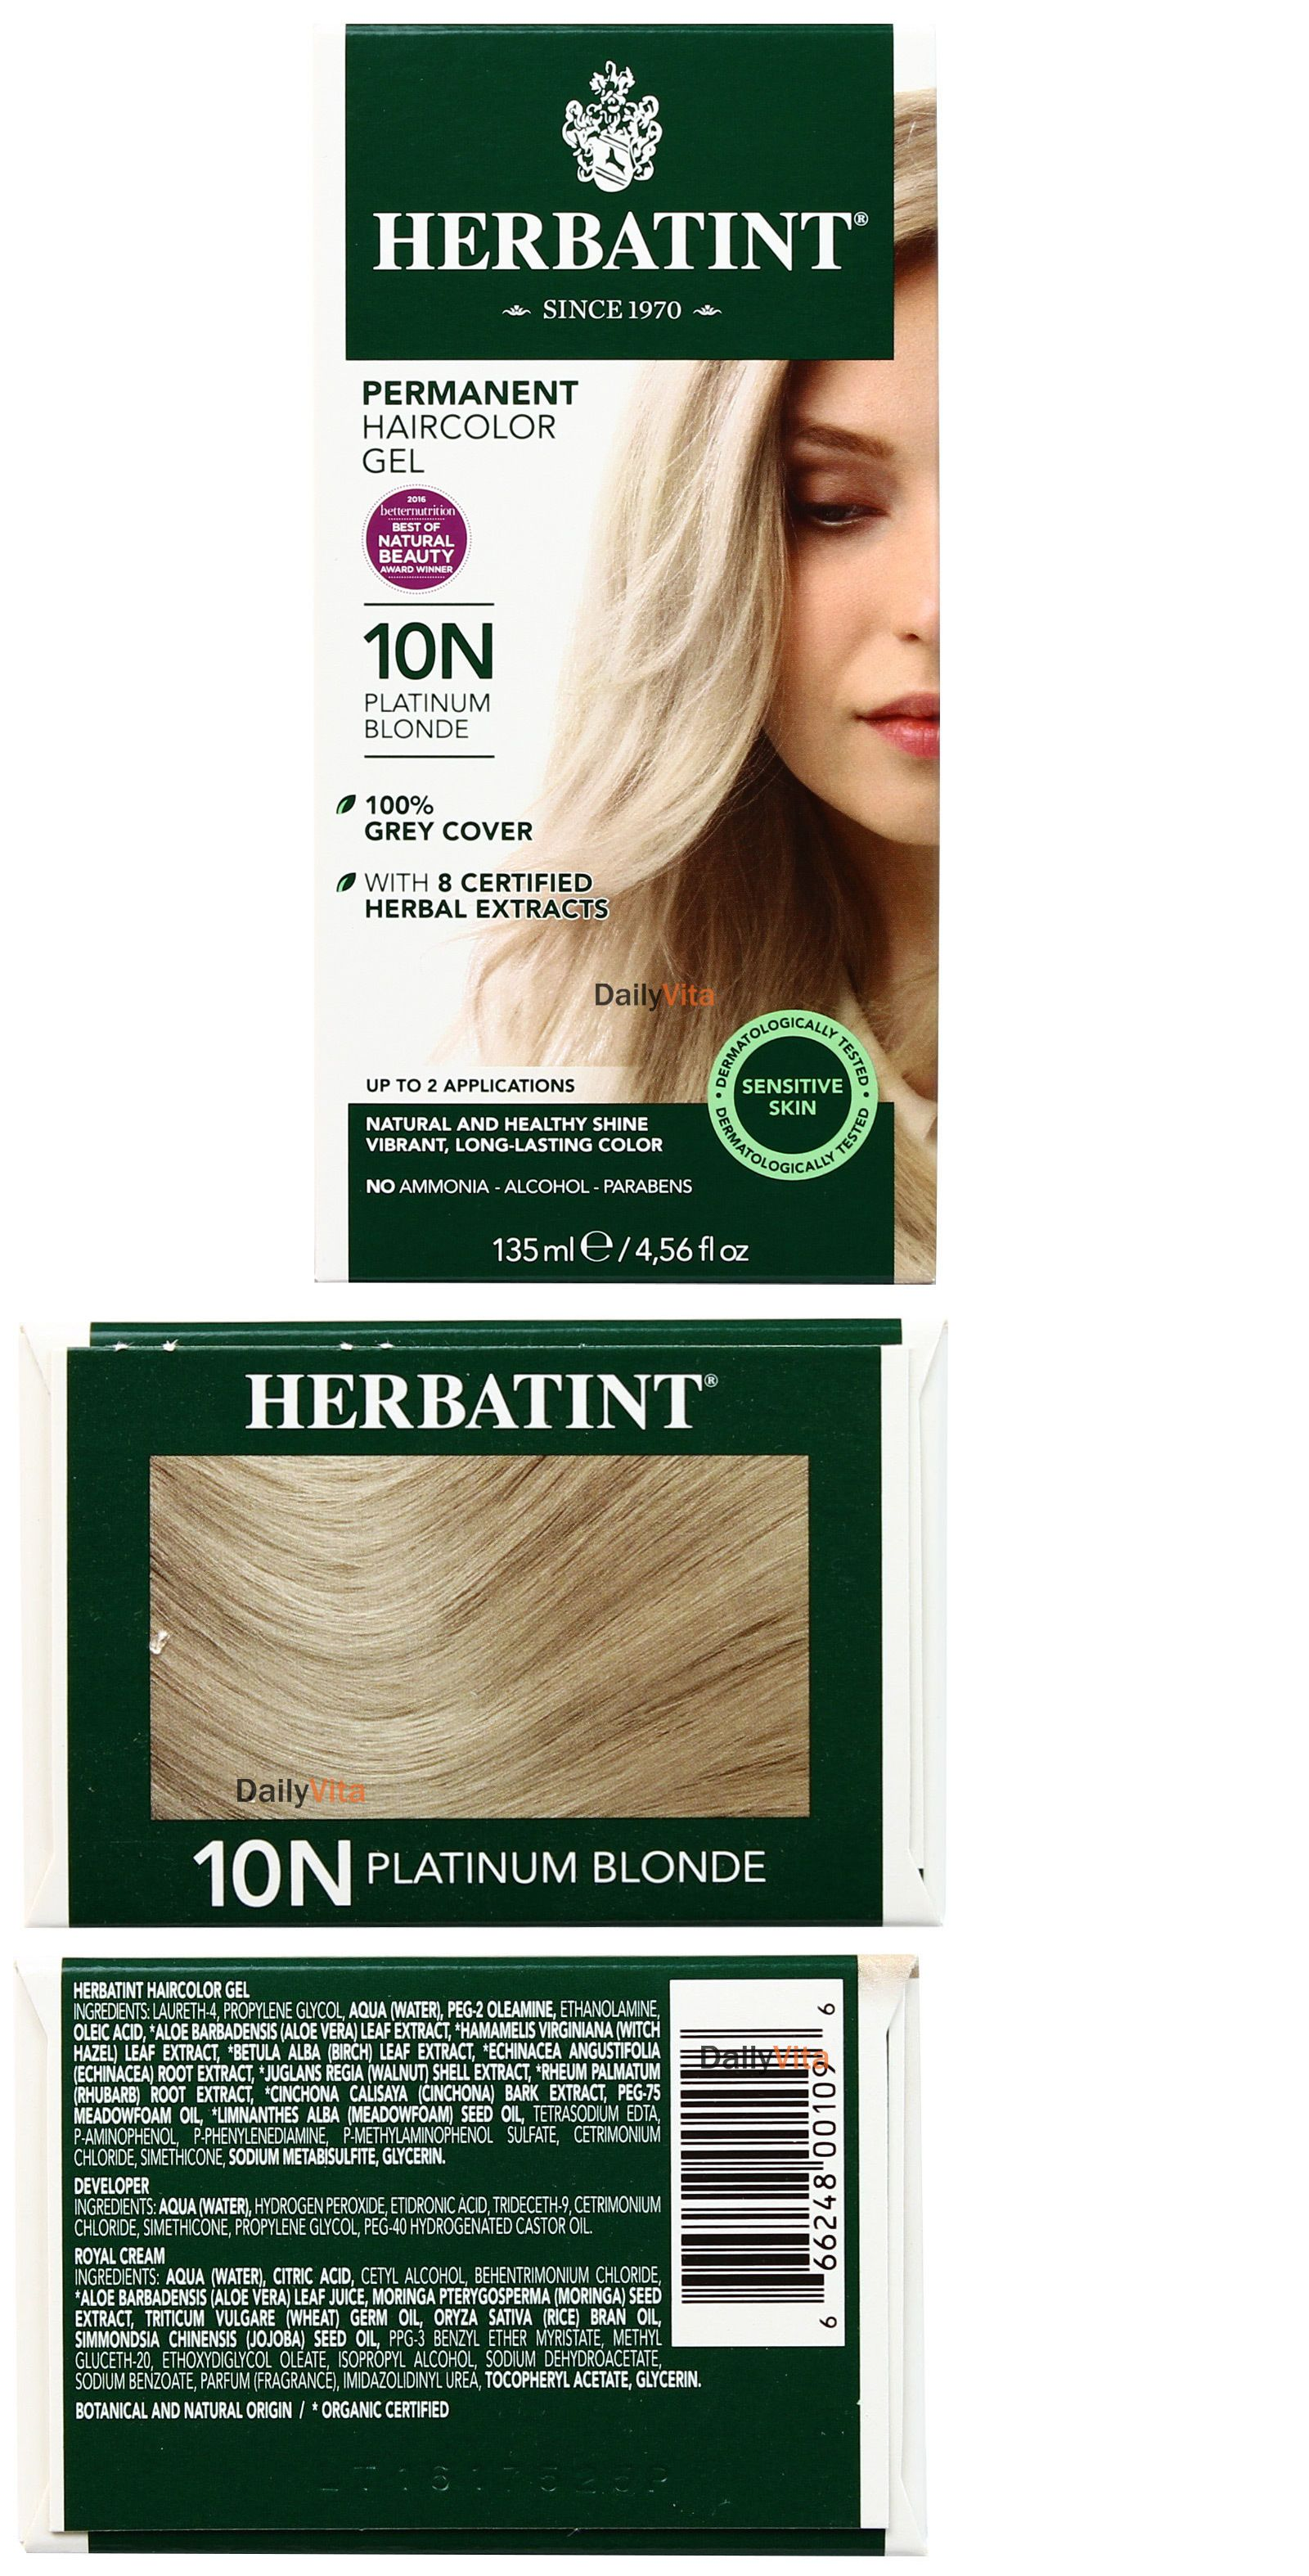 Herbatint Permanent Herbal Hair Color Gel 10n Platinum Blonde 456